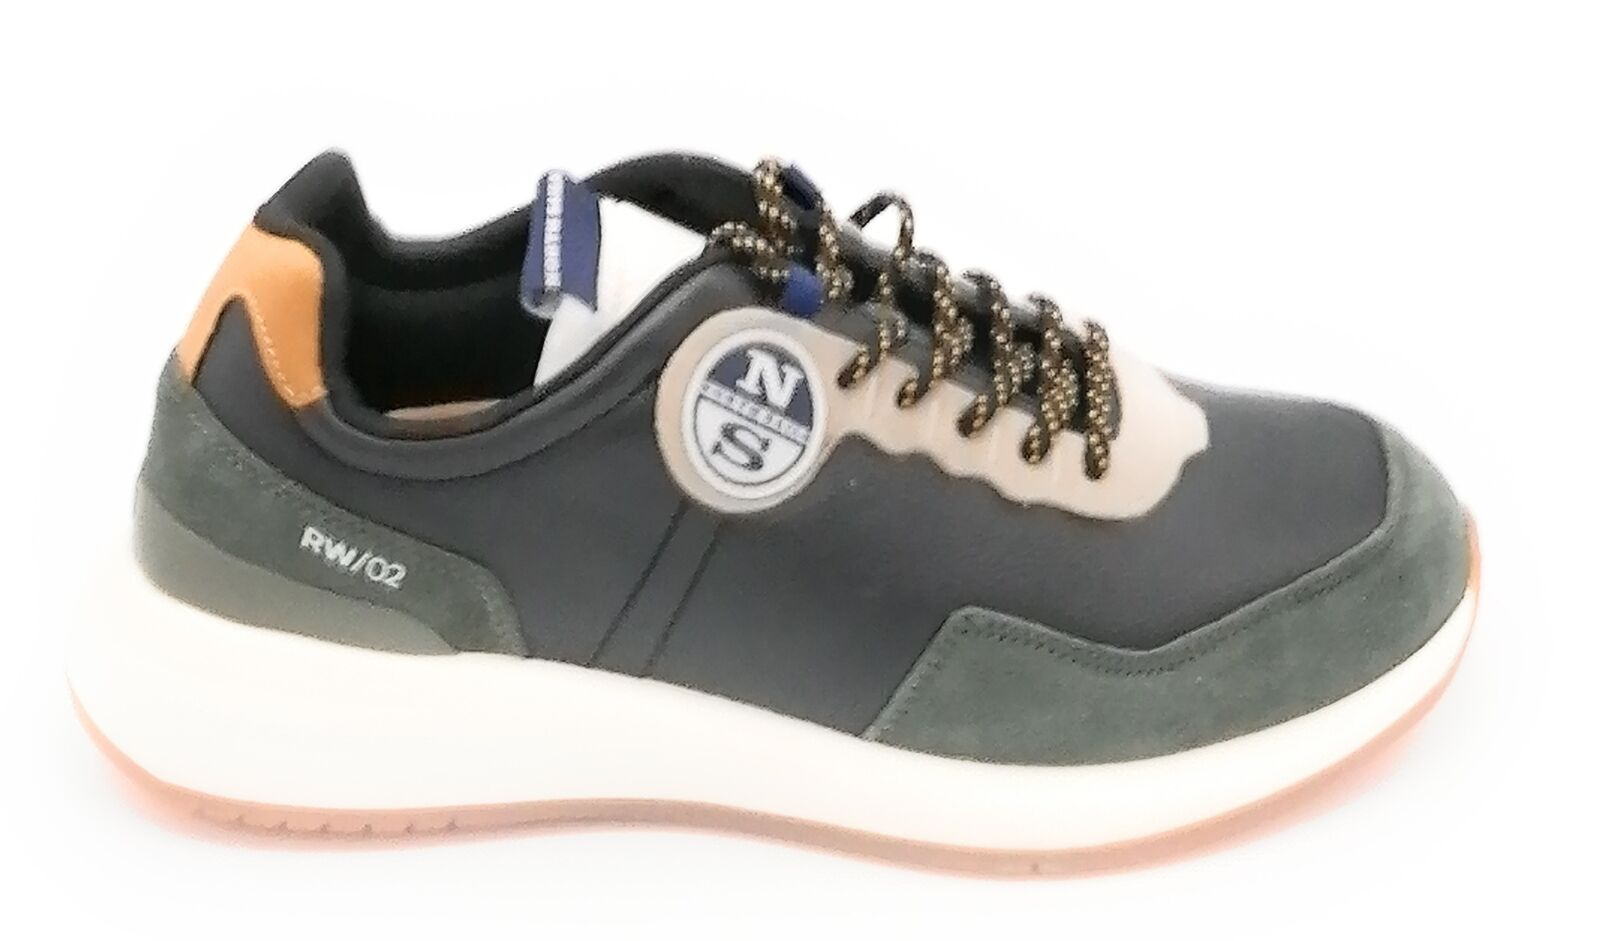 North Sails Rw / 02 Sneakers Leather Nera-Camoscio Military Green 0-1